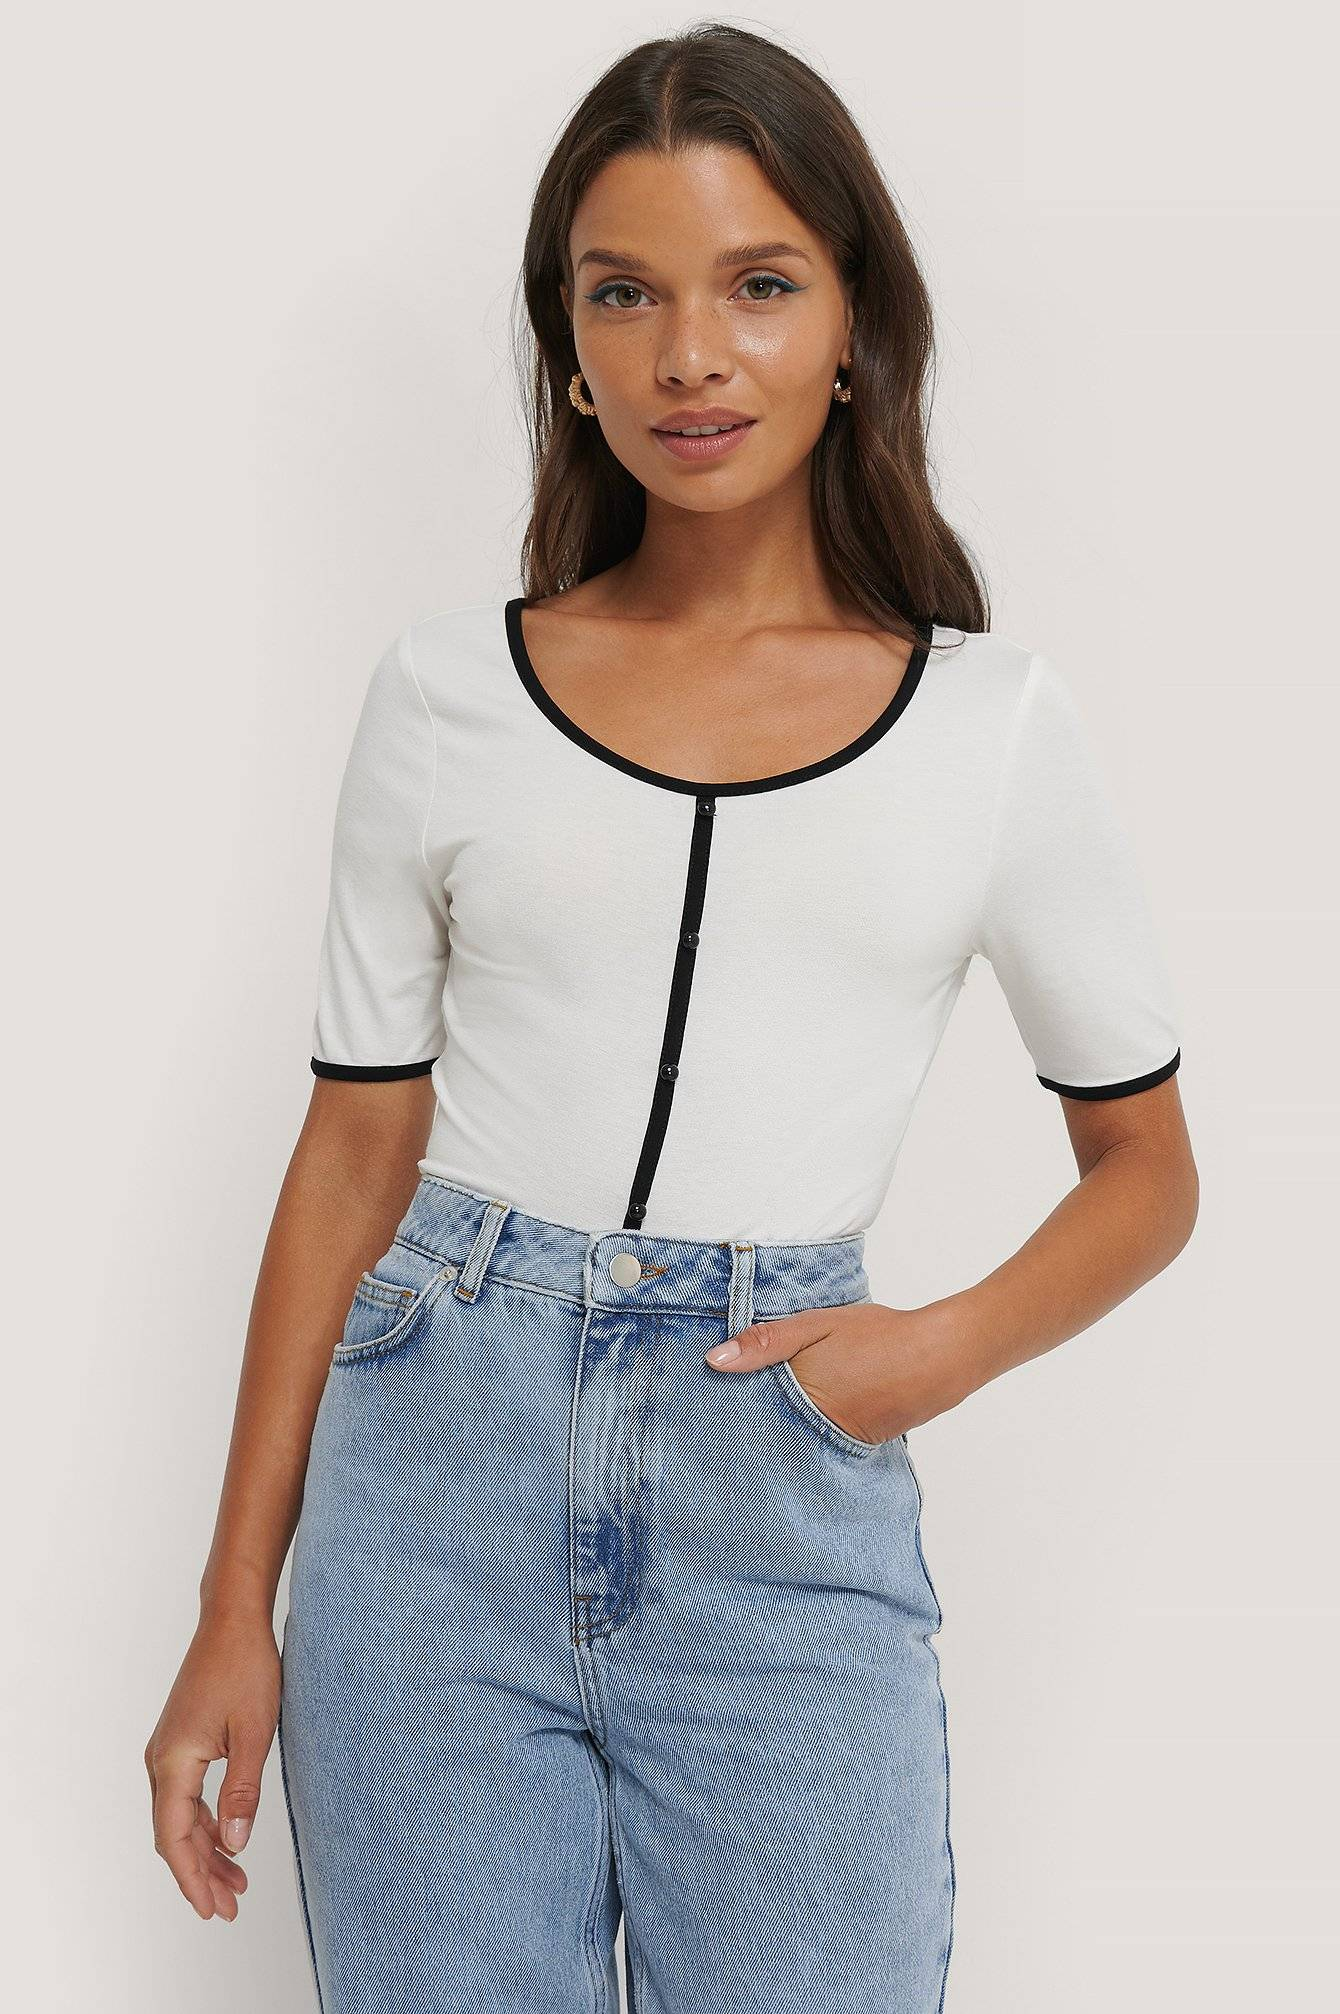 Queen of Jetlags x NA-KD Buttoned Short Sleeve Top - White